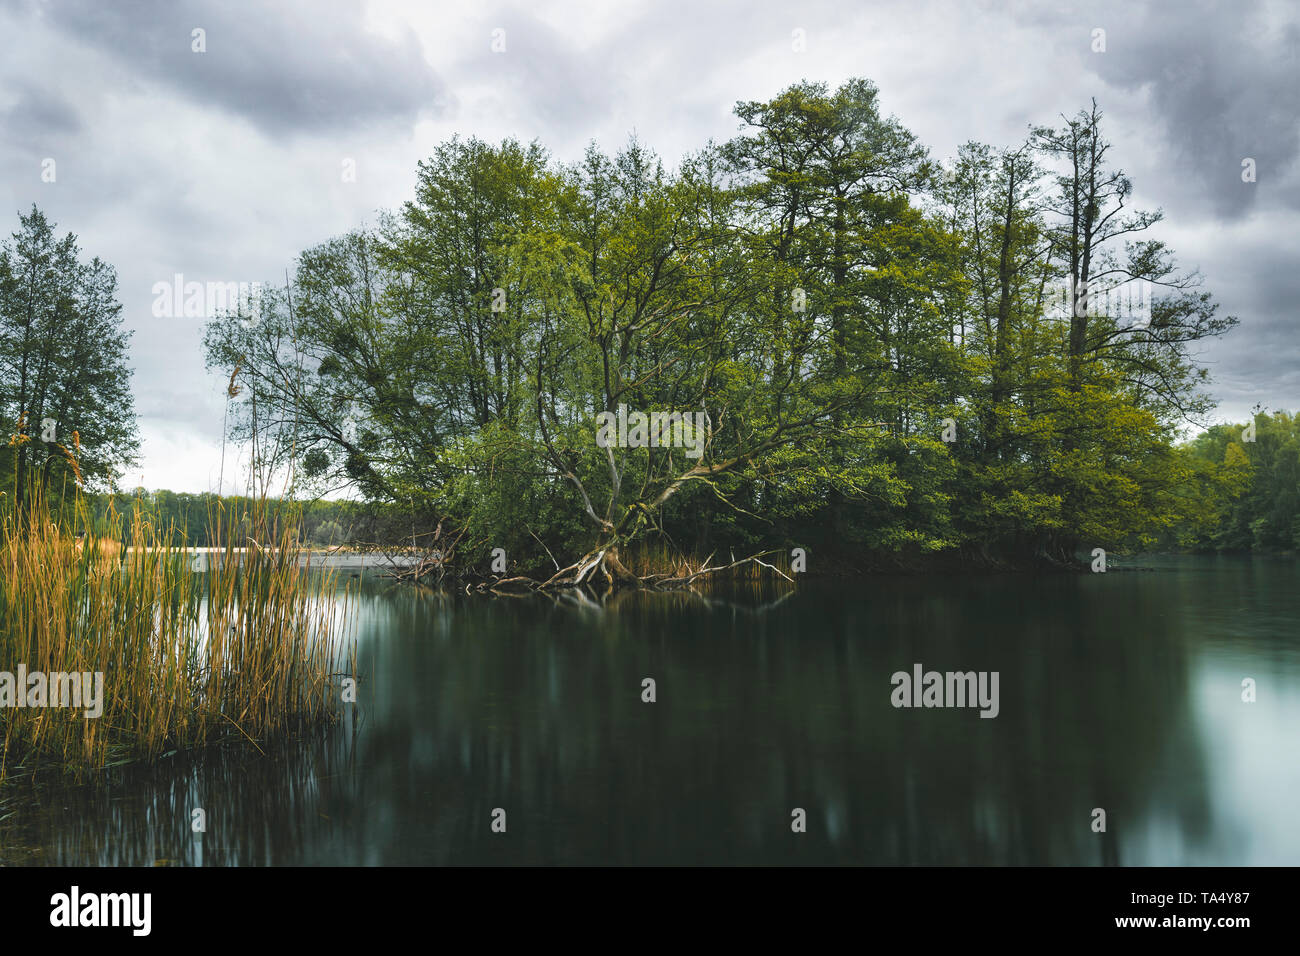 Nymphensee, the cleanest lake of Brandenburg. - Stock Image